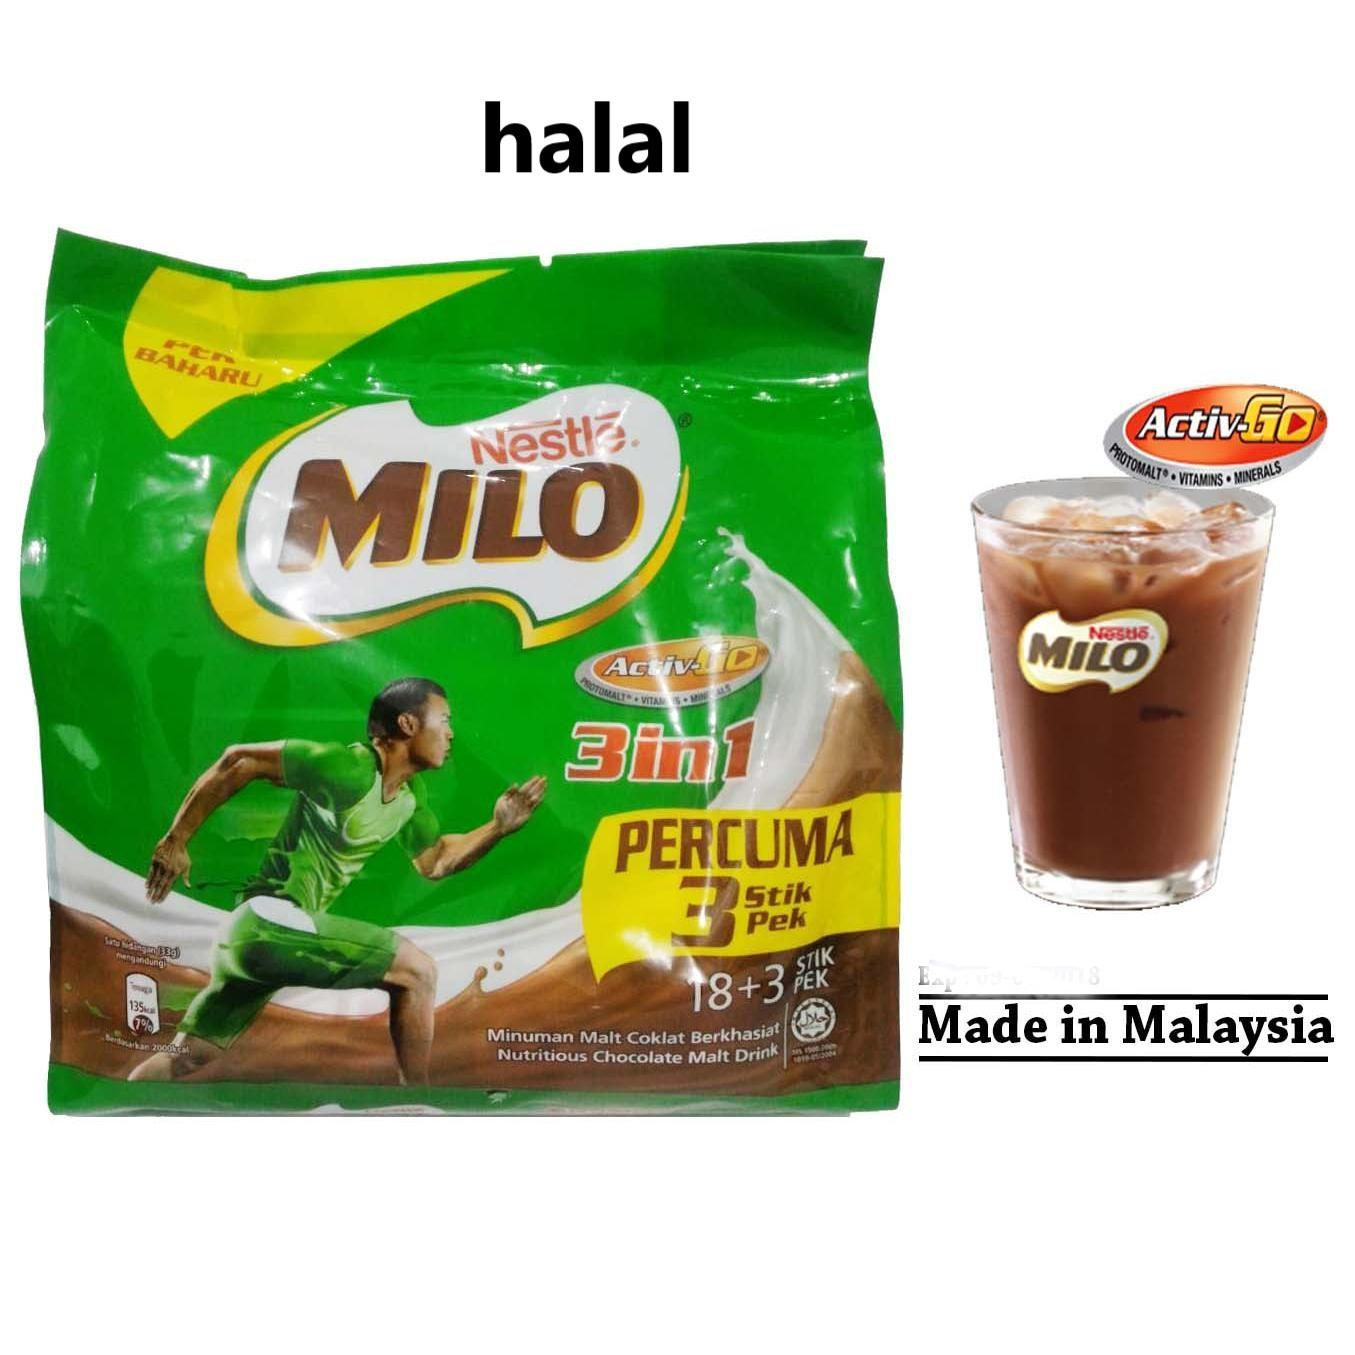 Ngemil Sehat Milo Malaysia 3 In 1 Isi 21 Sachet ( Expired 04/2020) By Ngemil Sehat.